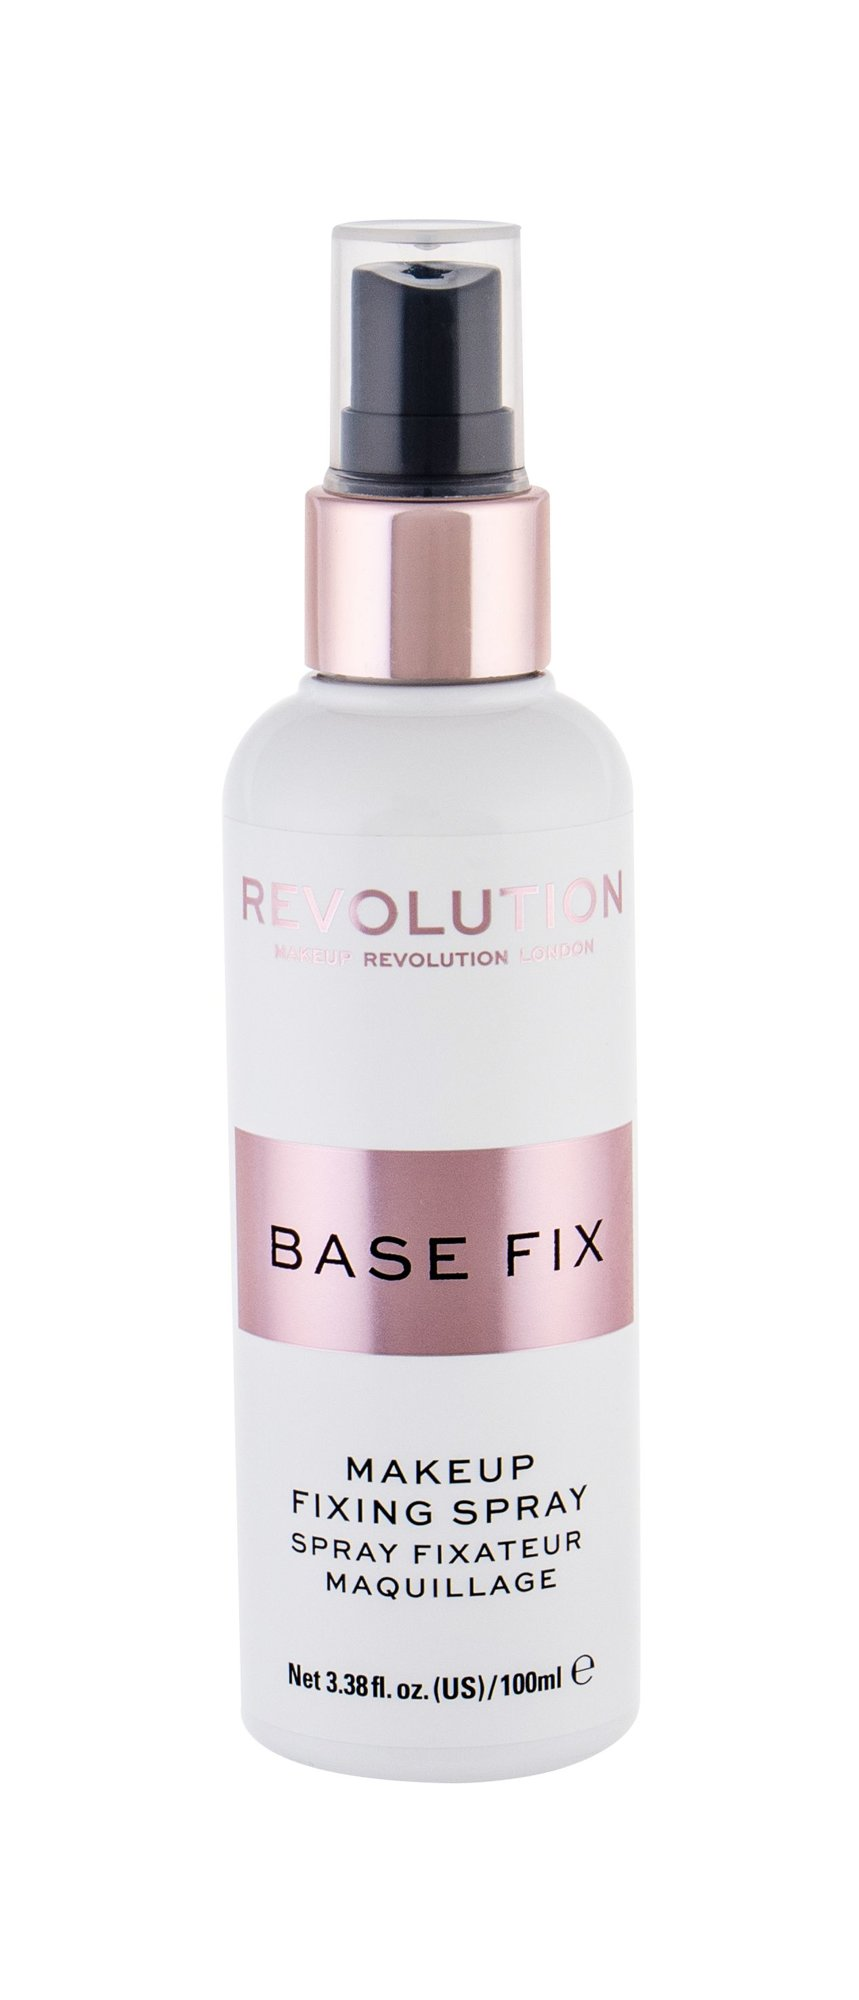 Makeup Revolution Fixing Spray fixační sprej na make-up 100 ml